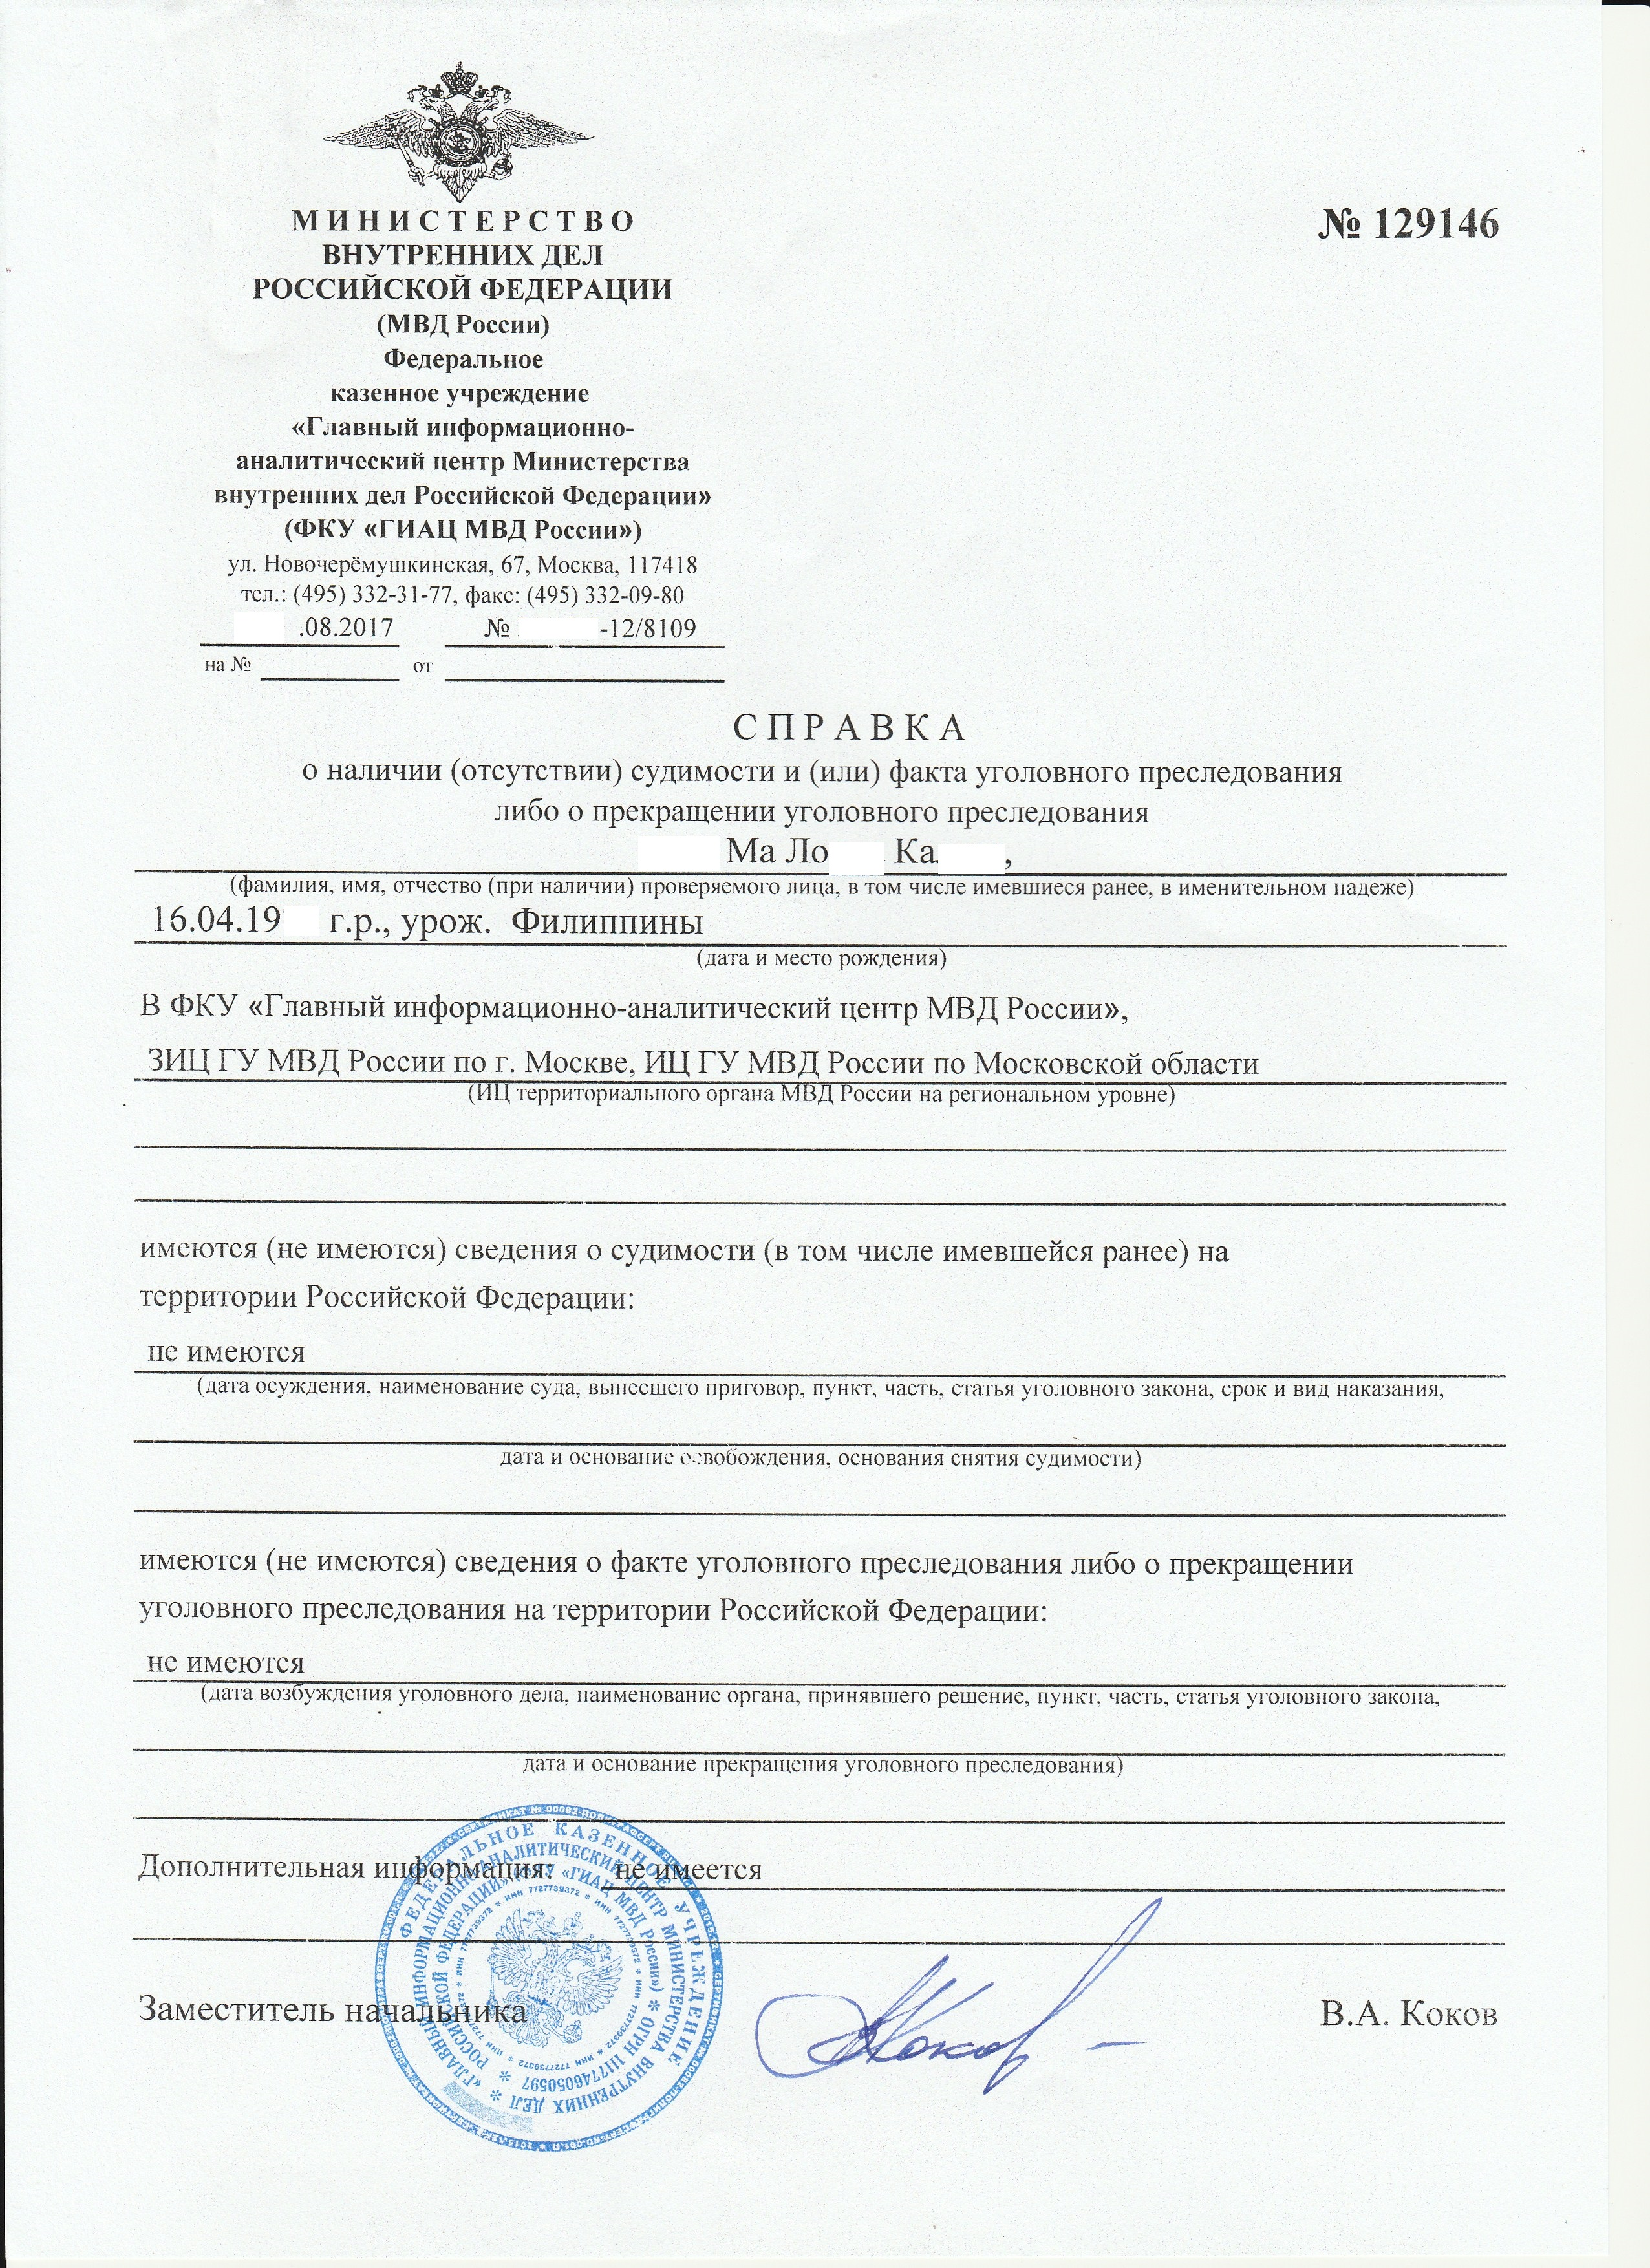 Russian police clearance certificate